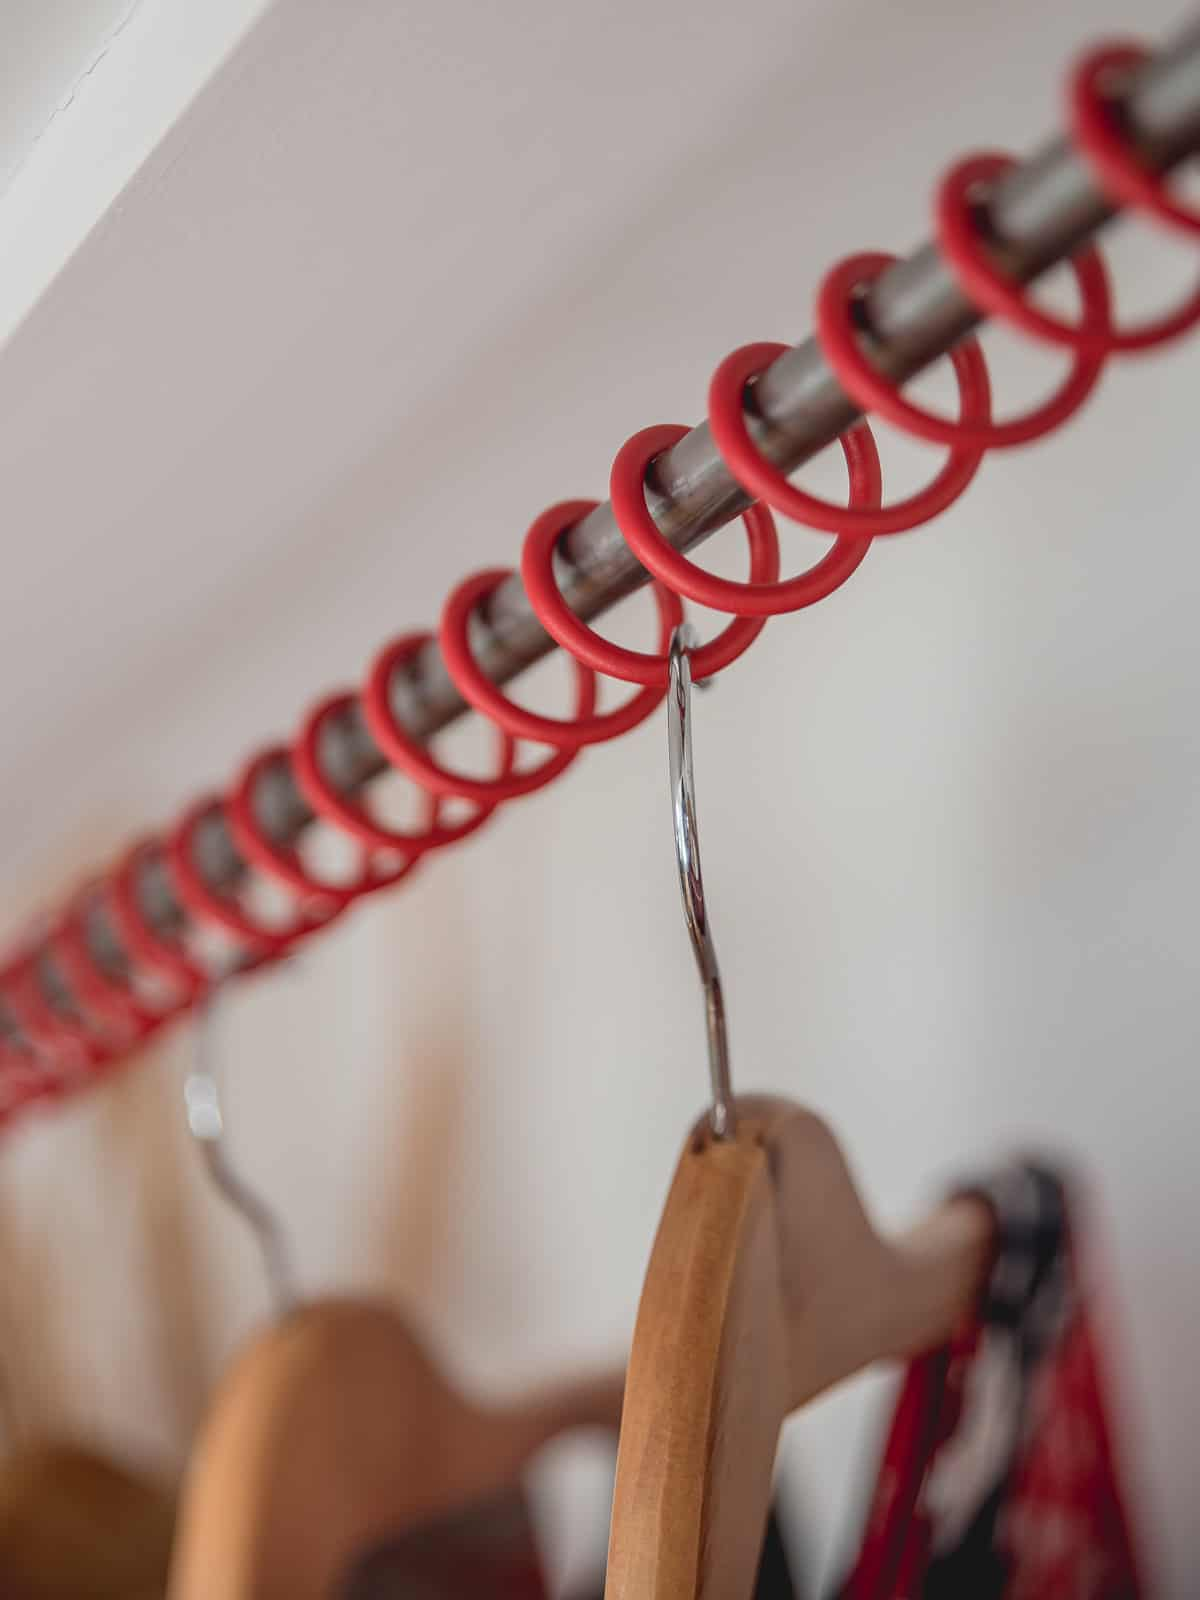 Zebedee Any Angle Hanging Rail - Textured Red with Coat Hangers